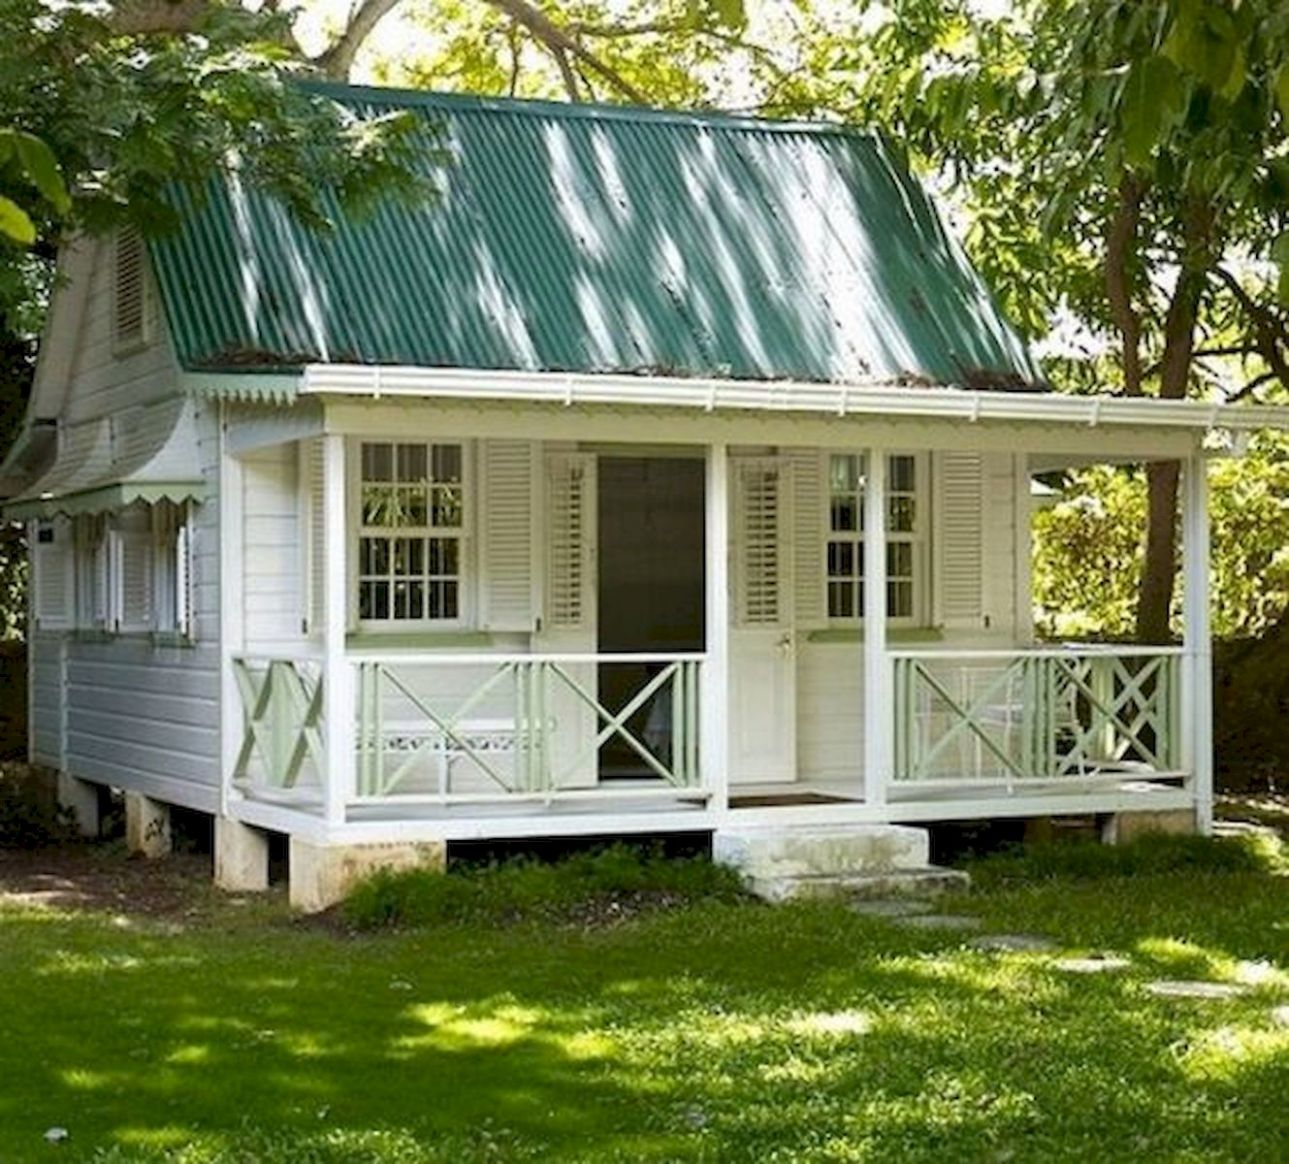 10 Best Tiny House Plans Small Cottages Design Ideas – 10DECOR - tiny house cottages